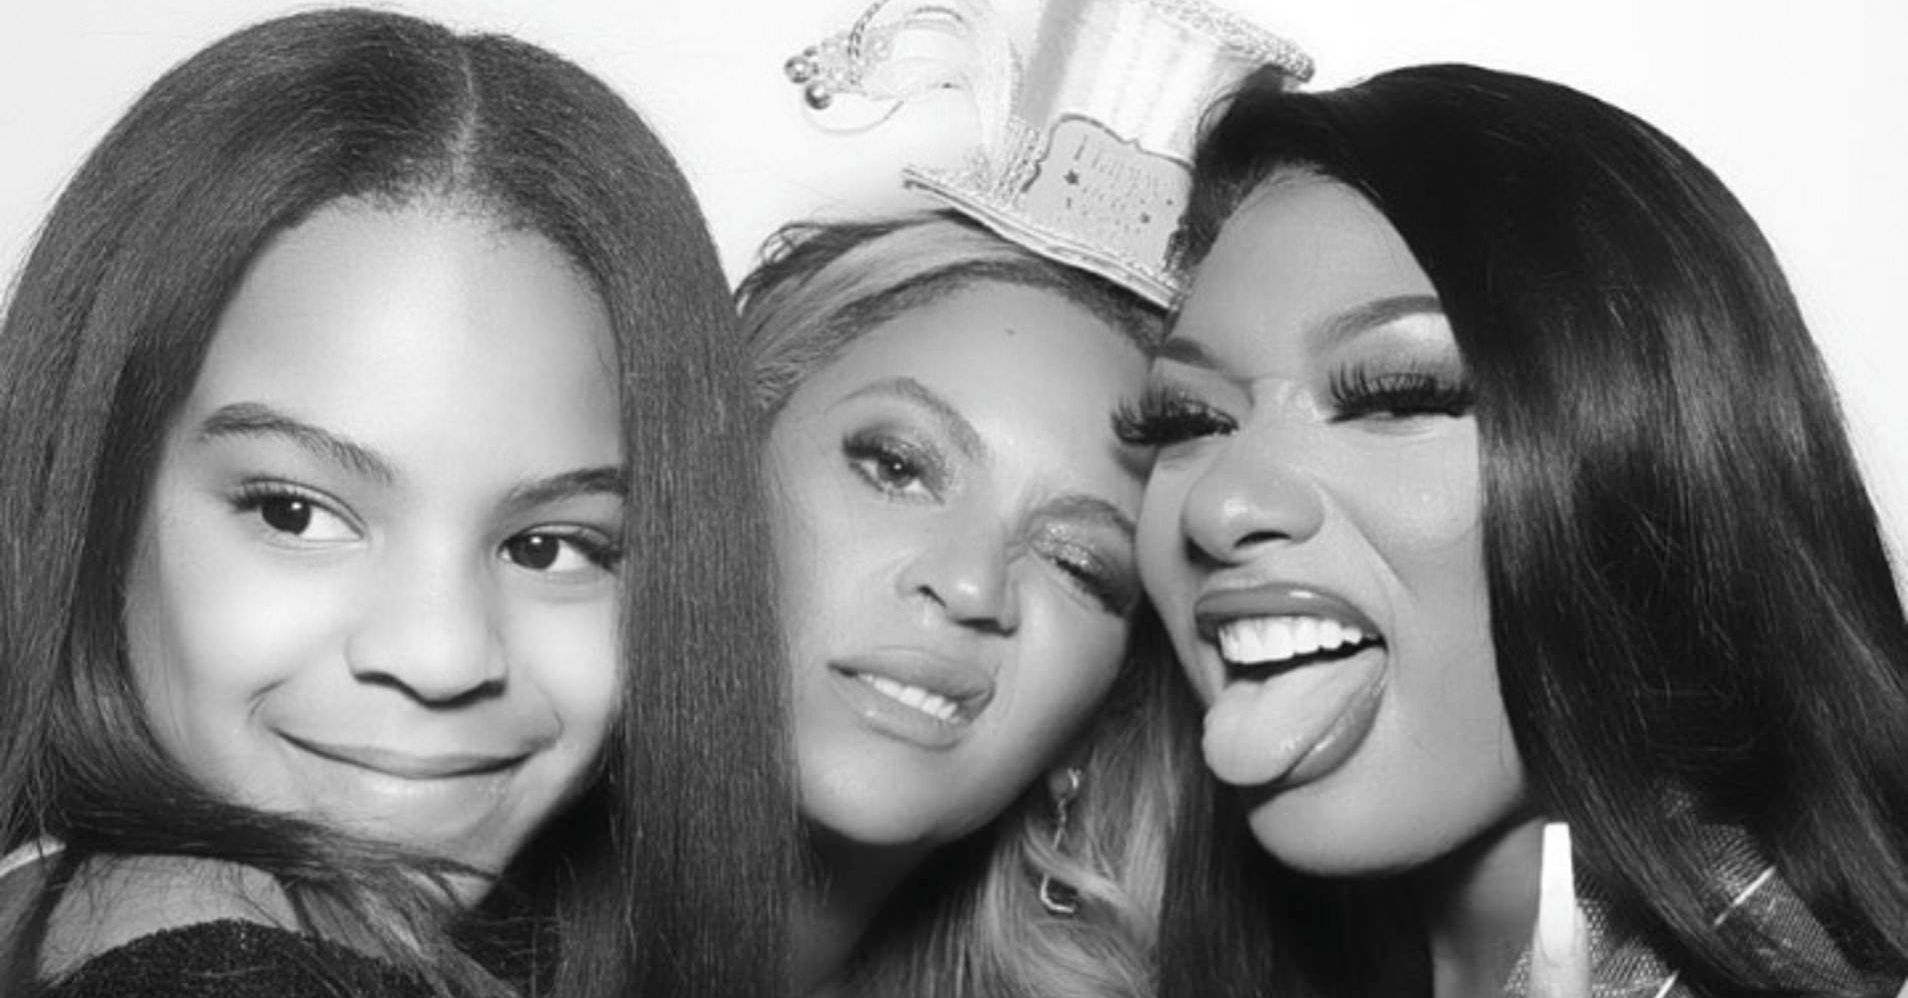 Megan Thee Stallion Says She Feels Like Family With Beyonce As They Talk All The Time